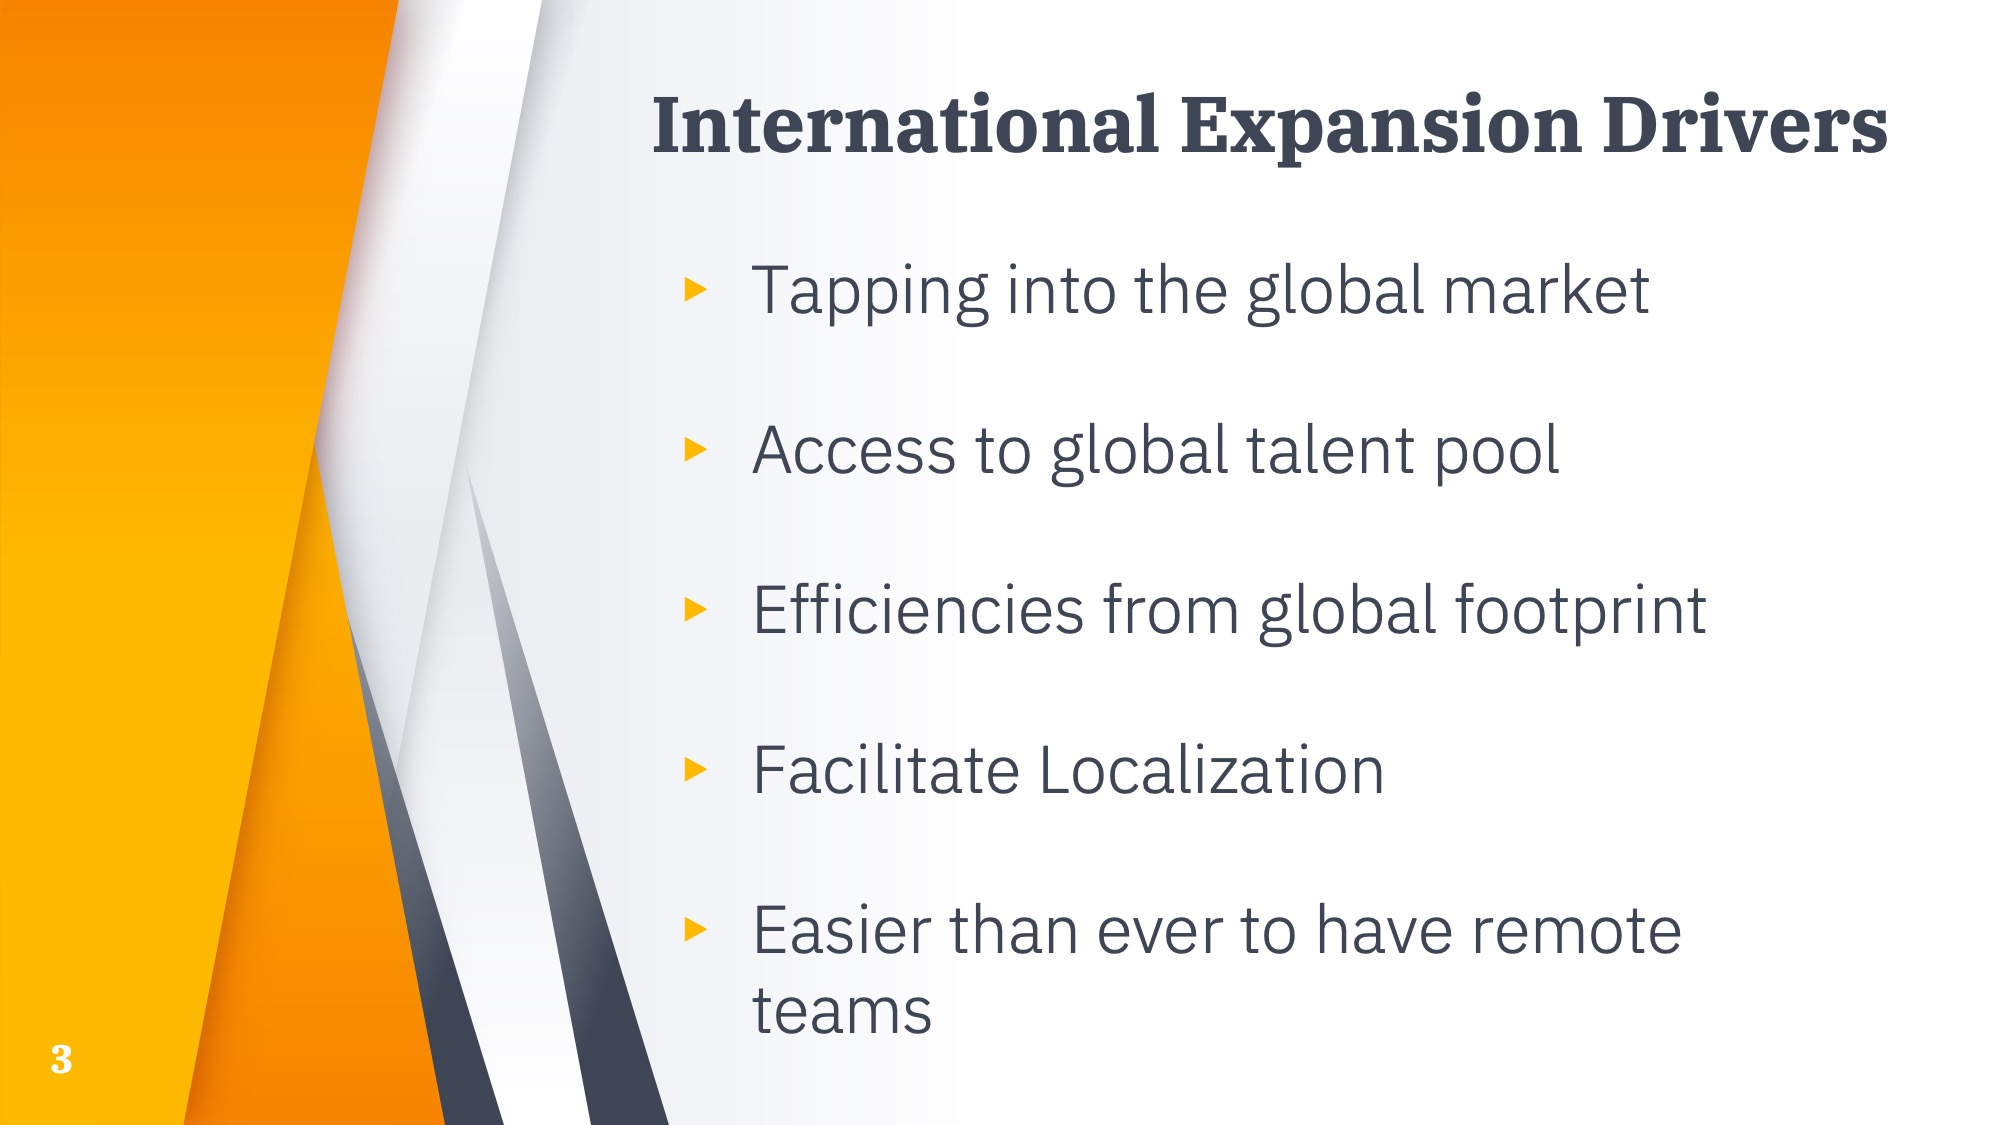 International expansion drivers